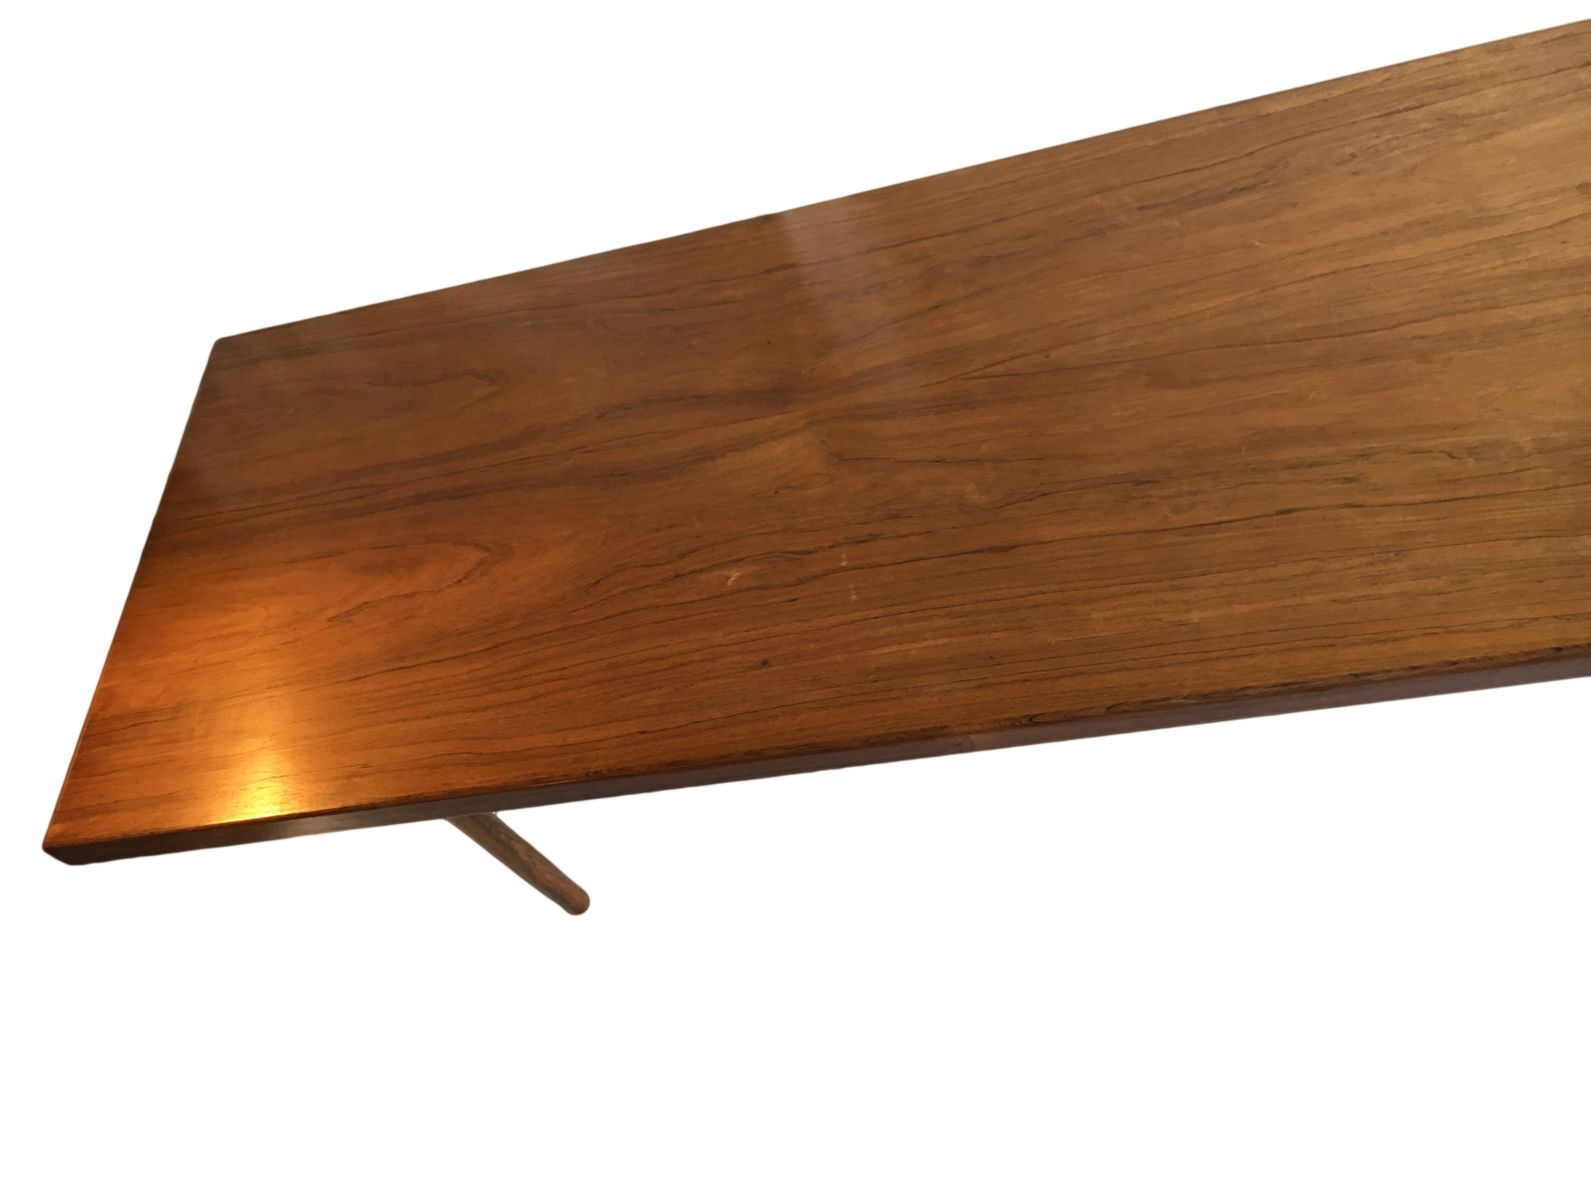 Vintage Rosewood Coffee Table By Kai Kristiansen For Sale At Pamono